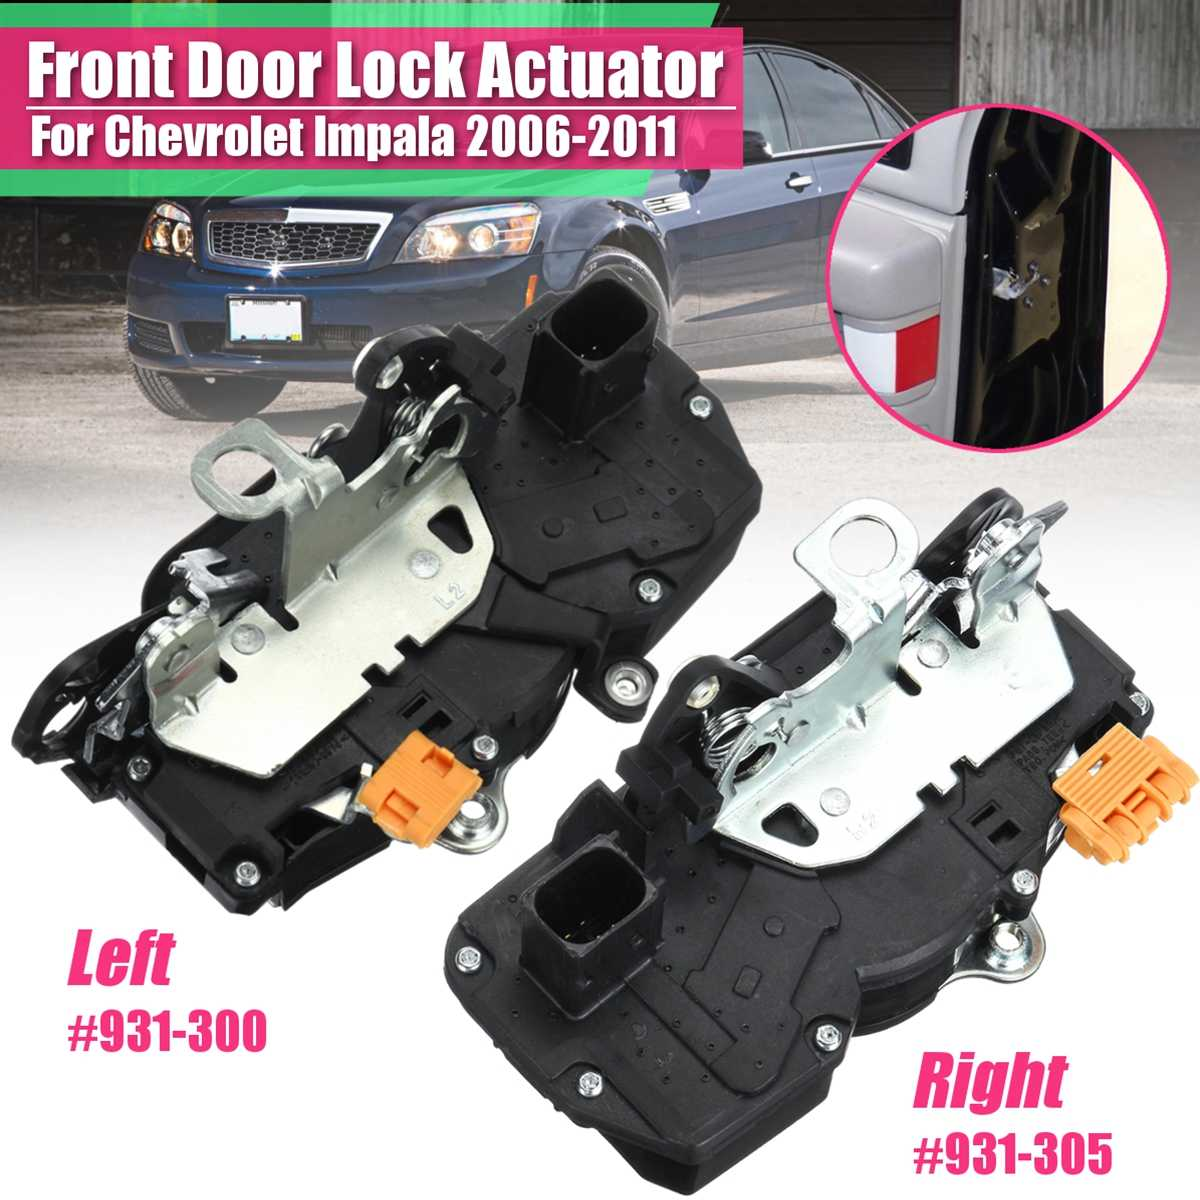 20790500 Power Door Lock Actuator for 06-11 Chevrolet Impala Rear Right 931-333